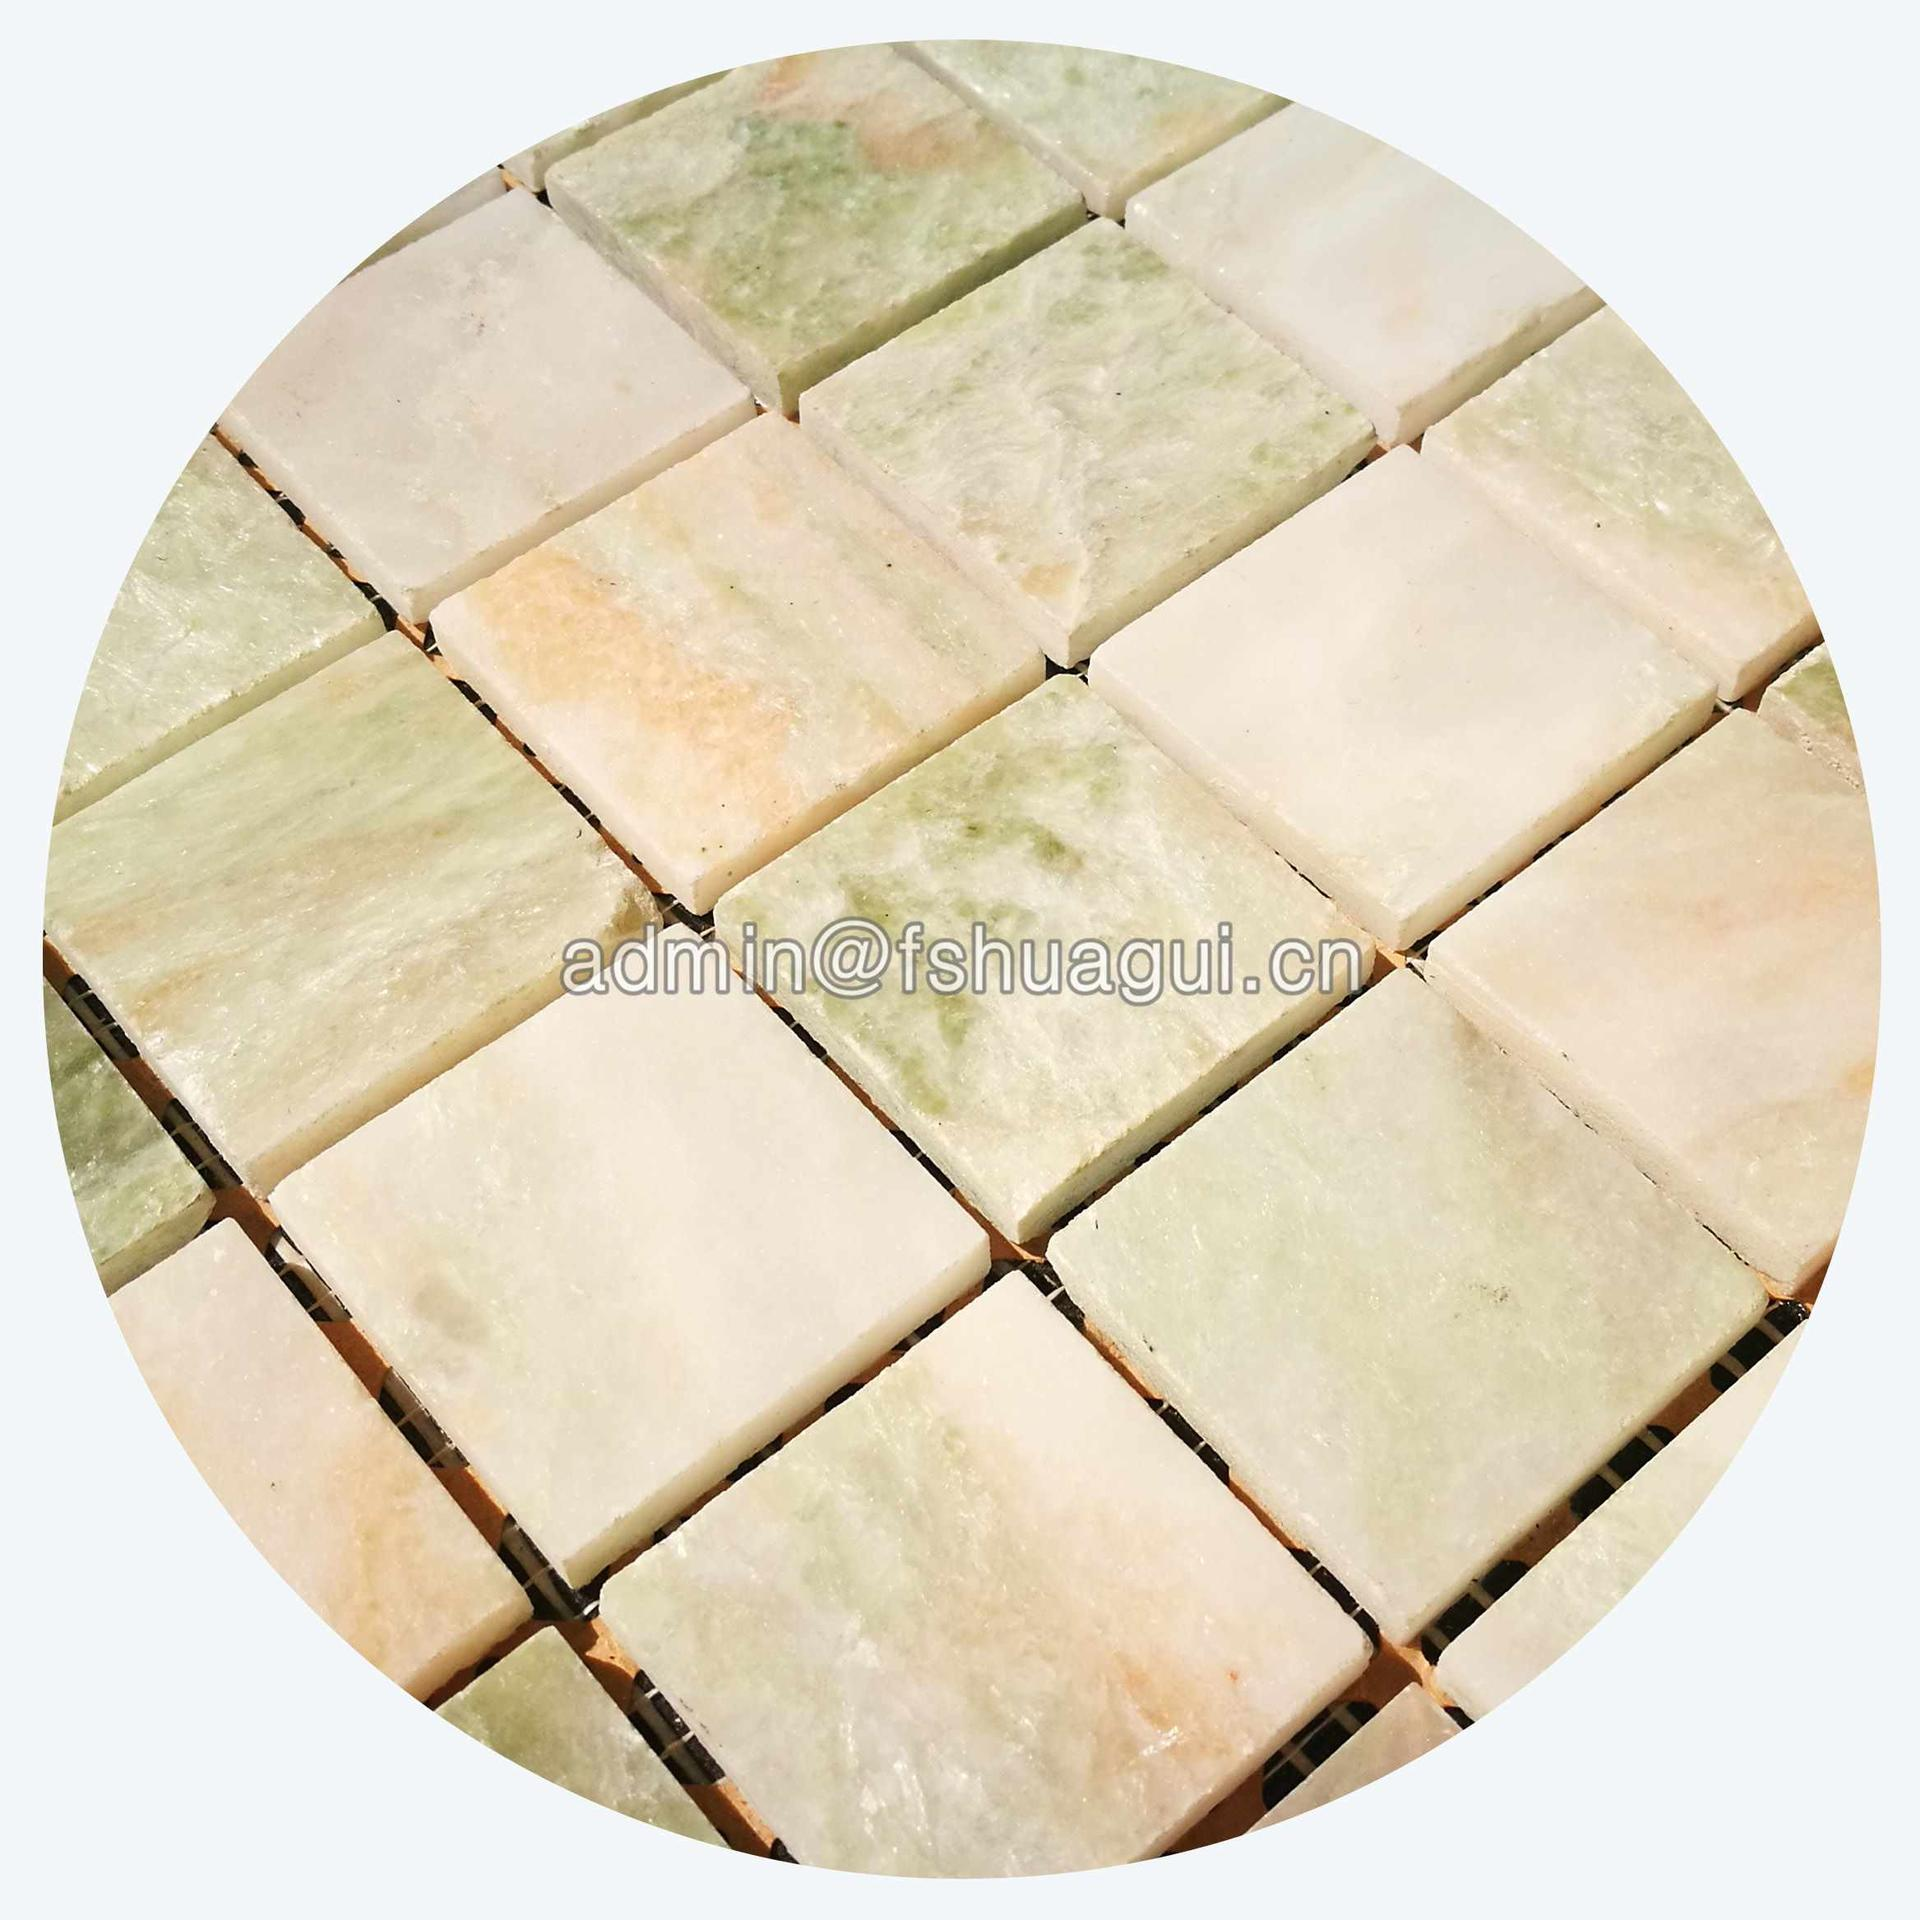 Natural jade stone mosaic wall tile from factory supply